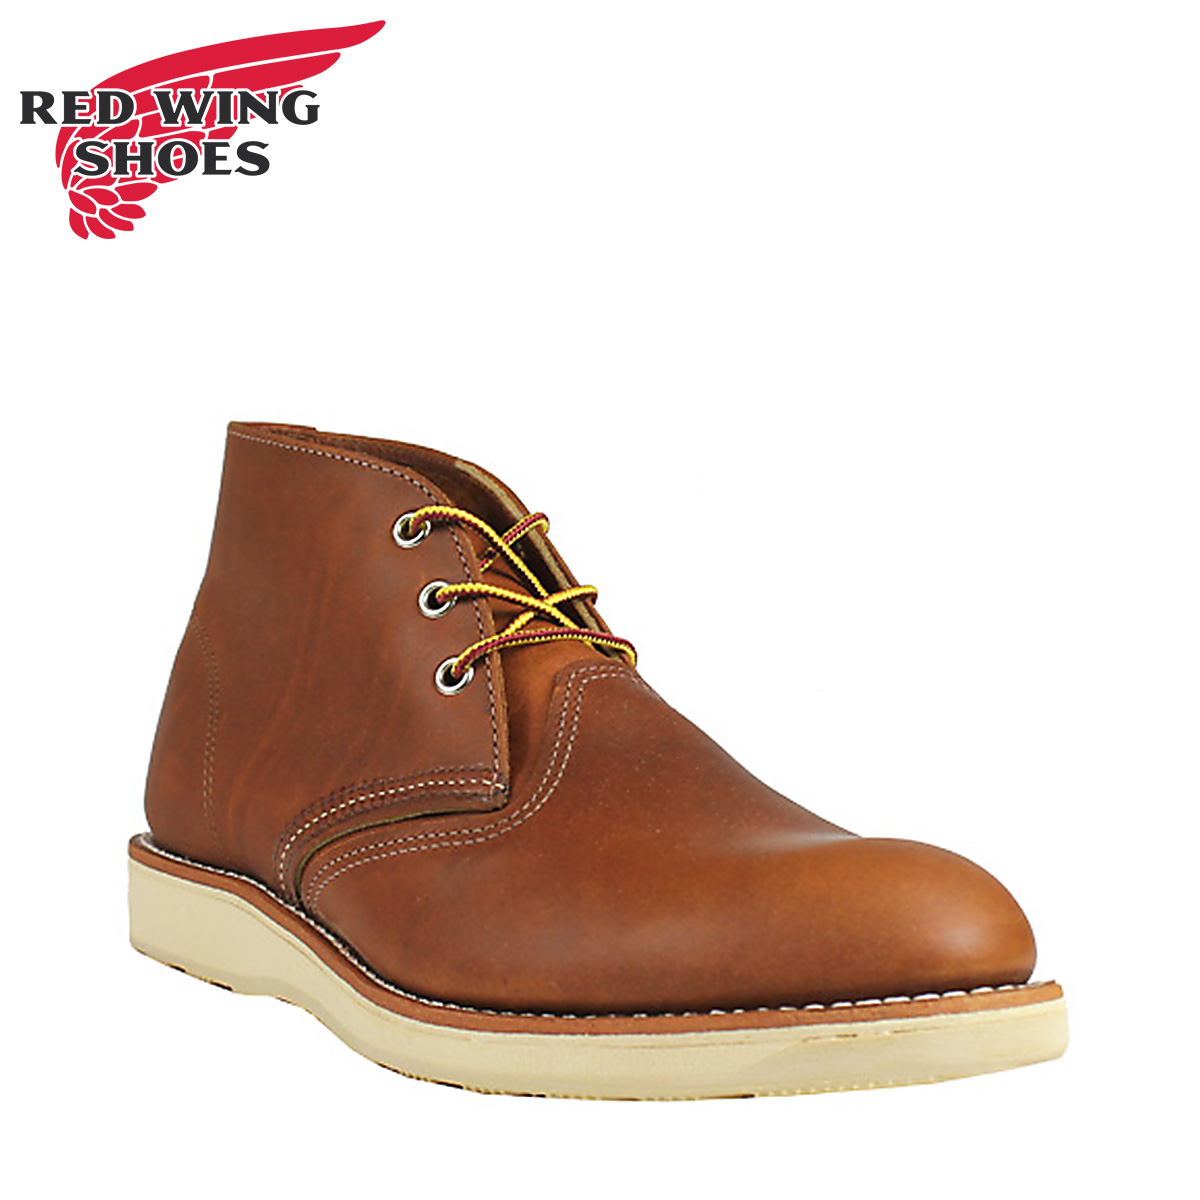 ab2e165d96633 Redwing RED WING classic work chukka boots 3140 Classic Work Chukka Boots D  wise mens Made in USA Red Wing